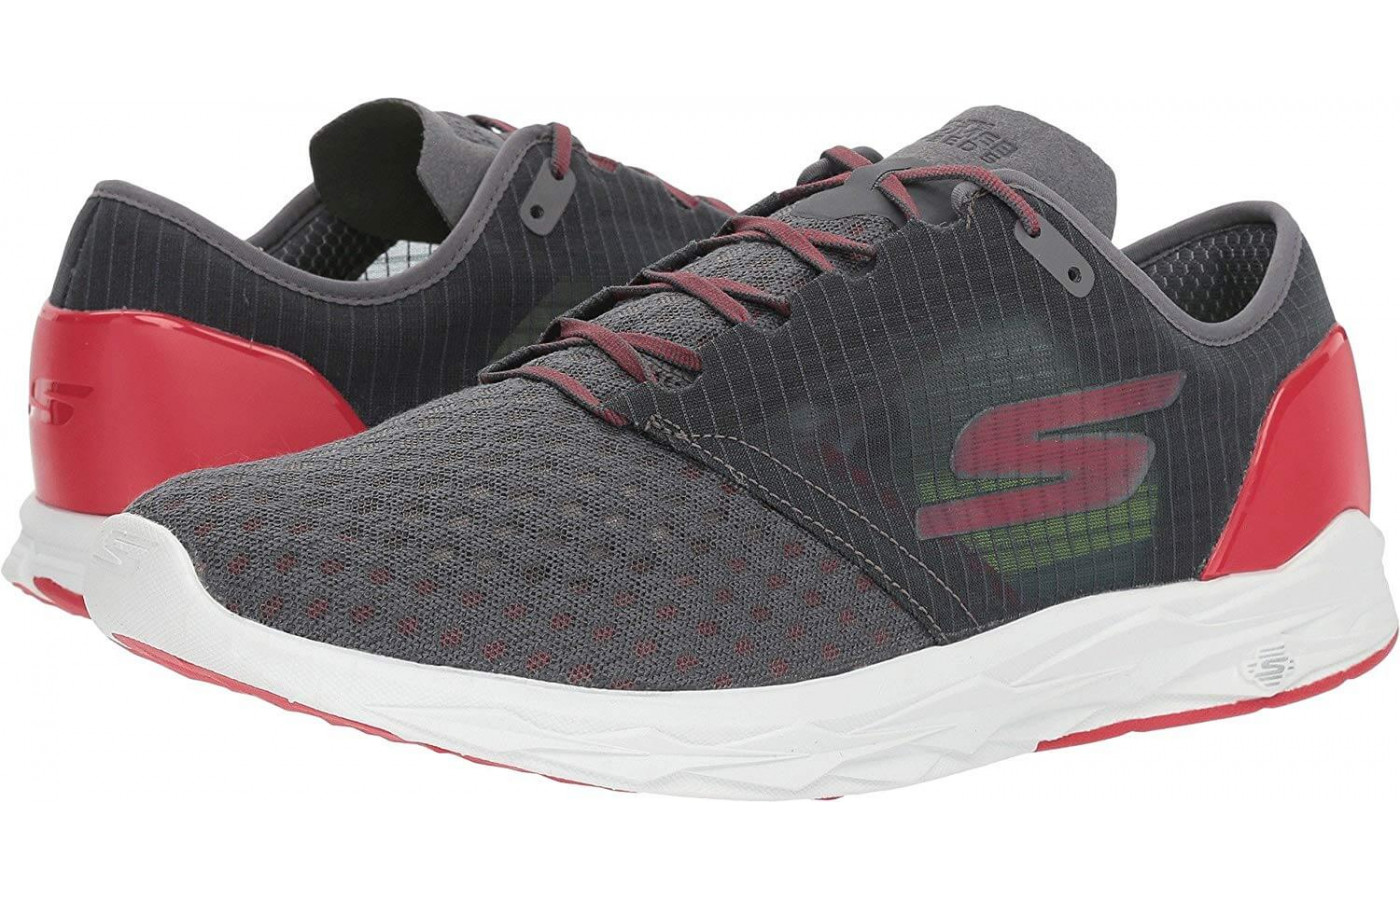 This Skechers GoMeb Speed 5 is designed for racing.